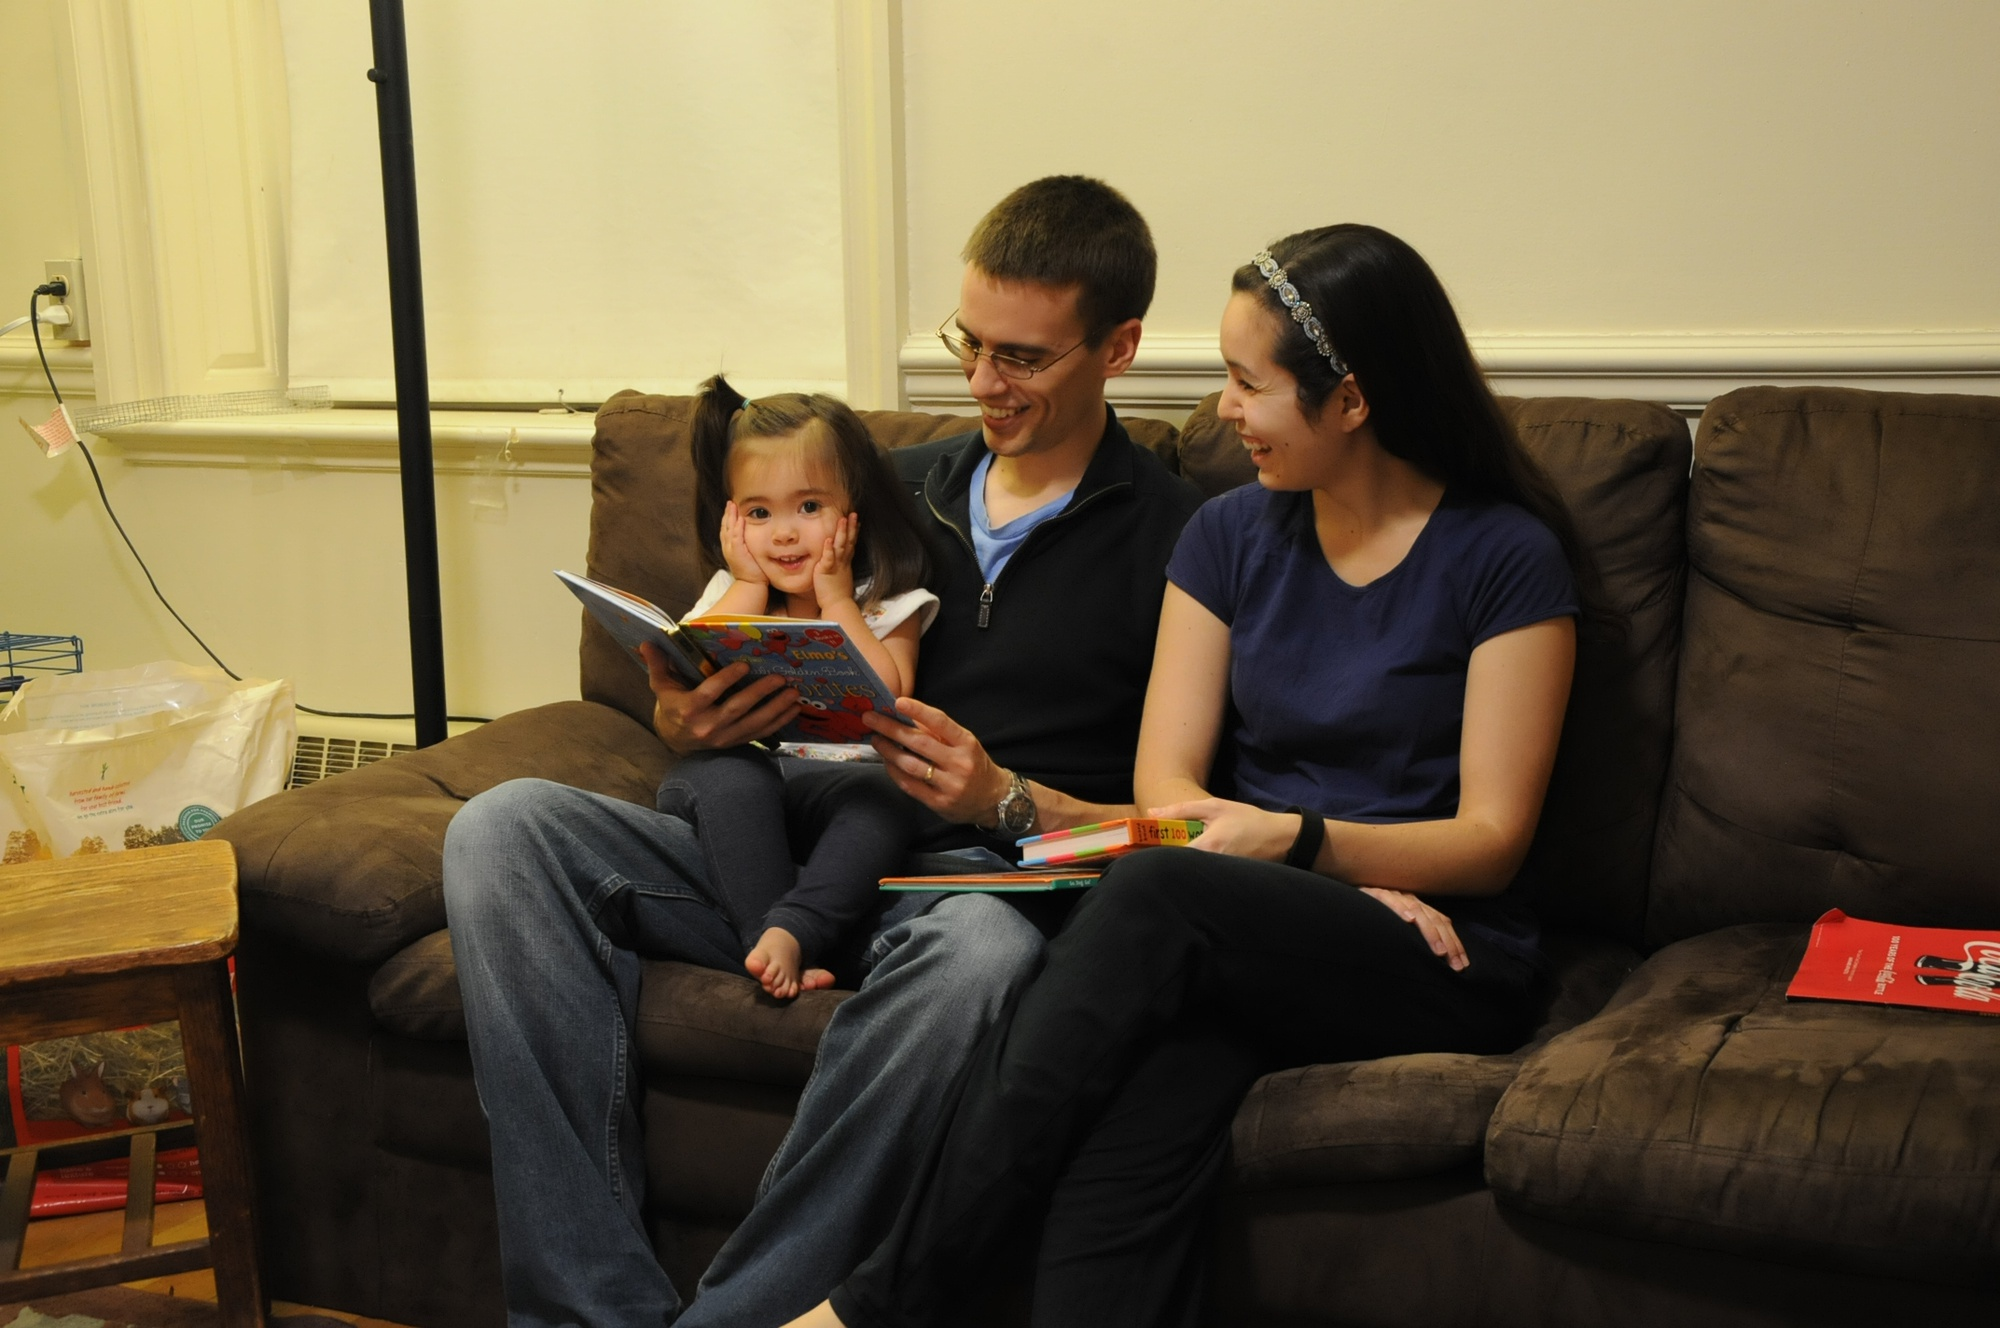 The daughter of proctors Alex and Celeste Douglas reads an Elmo book with her parents in Lionel A.